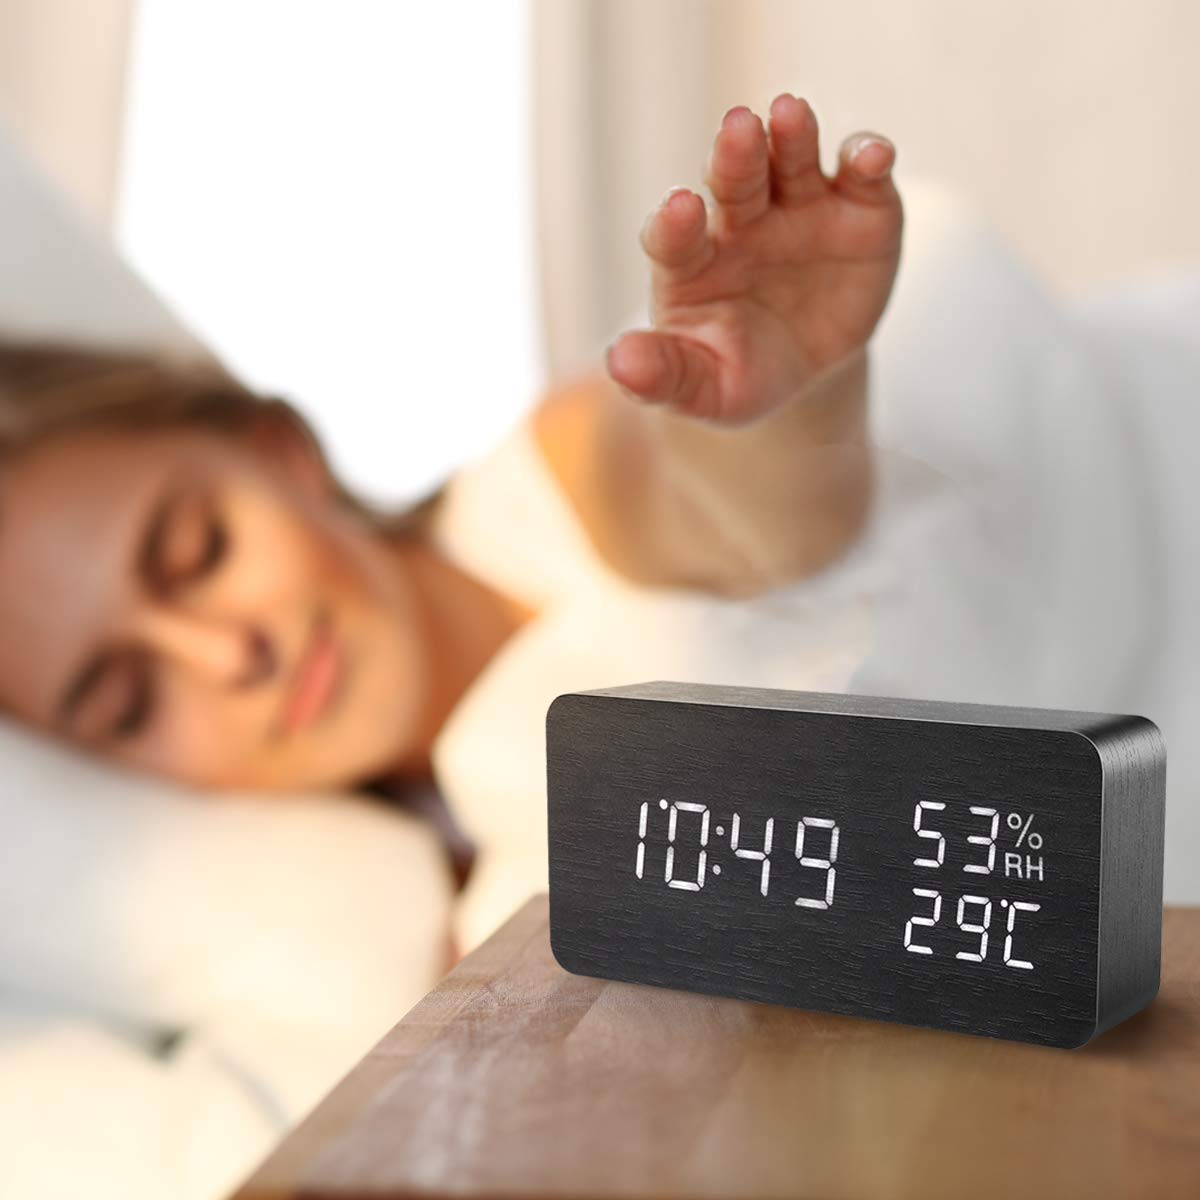 AMIR Alarm Clock, Wooden Digital Multi-Function Modern Cube LED Light, Smart Voice-Activated with 3 Alarm Sounds, Display Date Temperature & Humidity for Home, Kitchen, Bedroom (Black) by AMIR (Image #8)